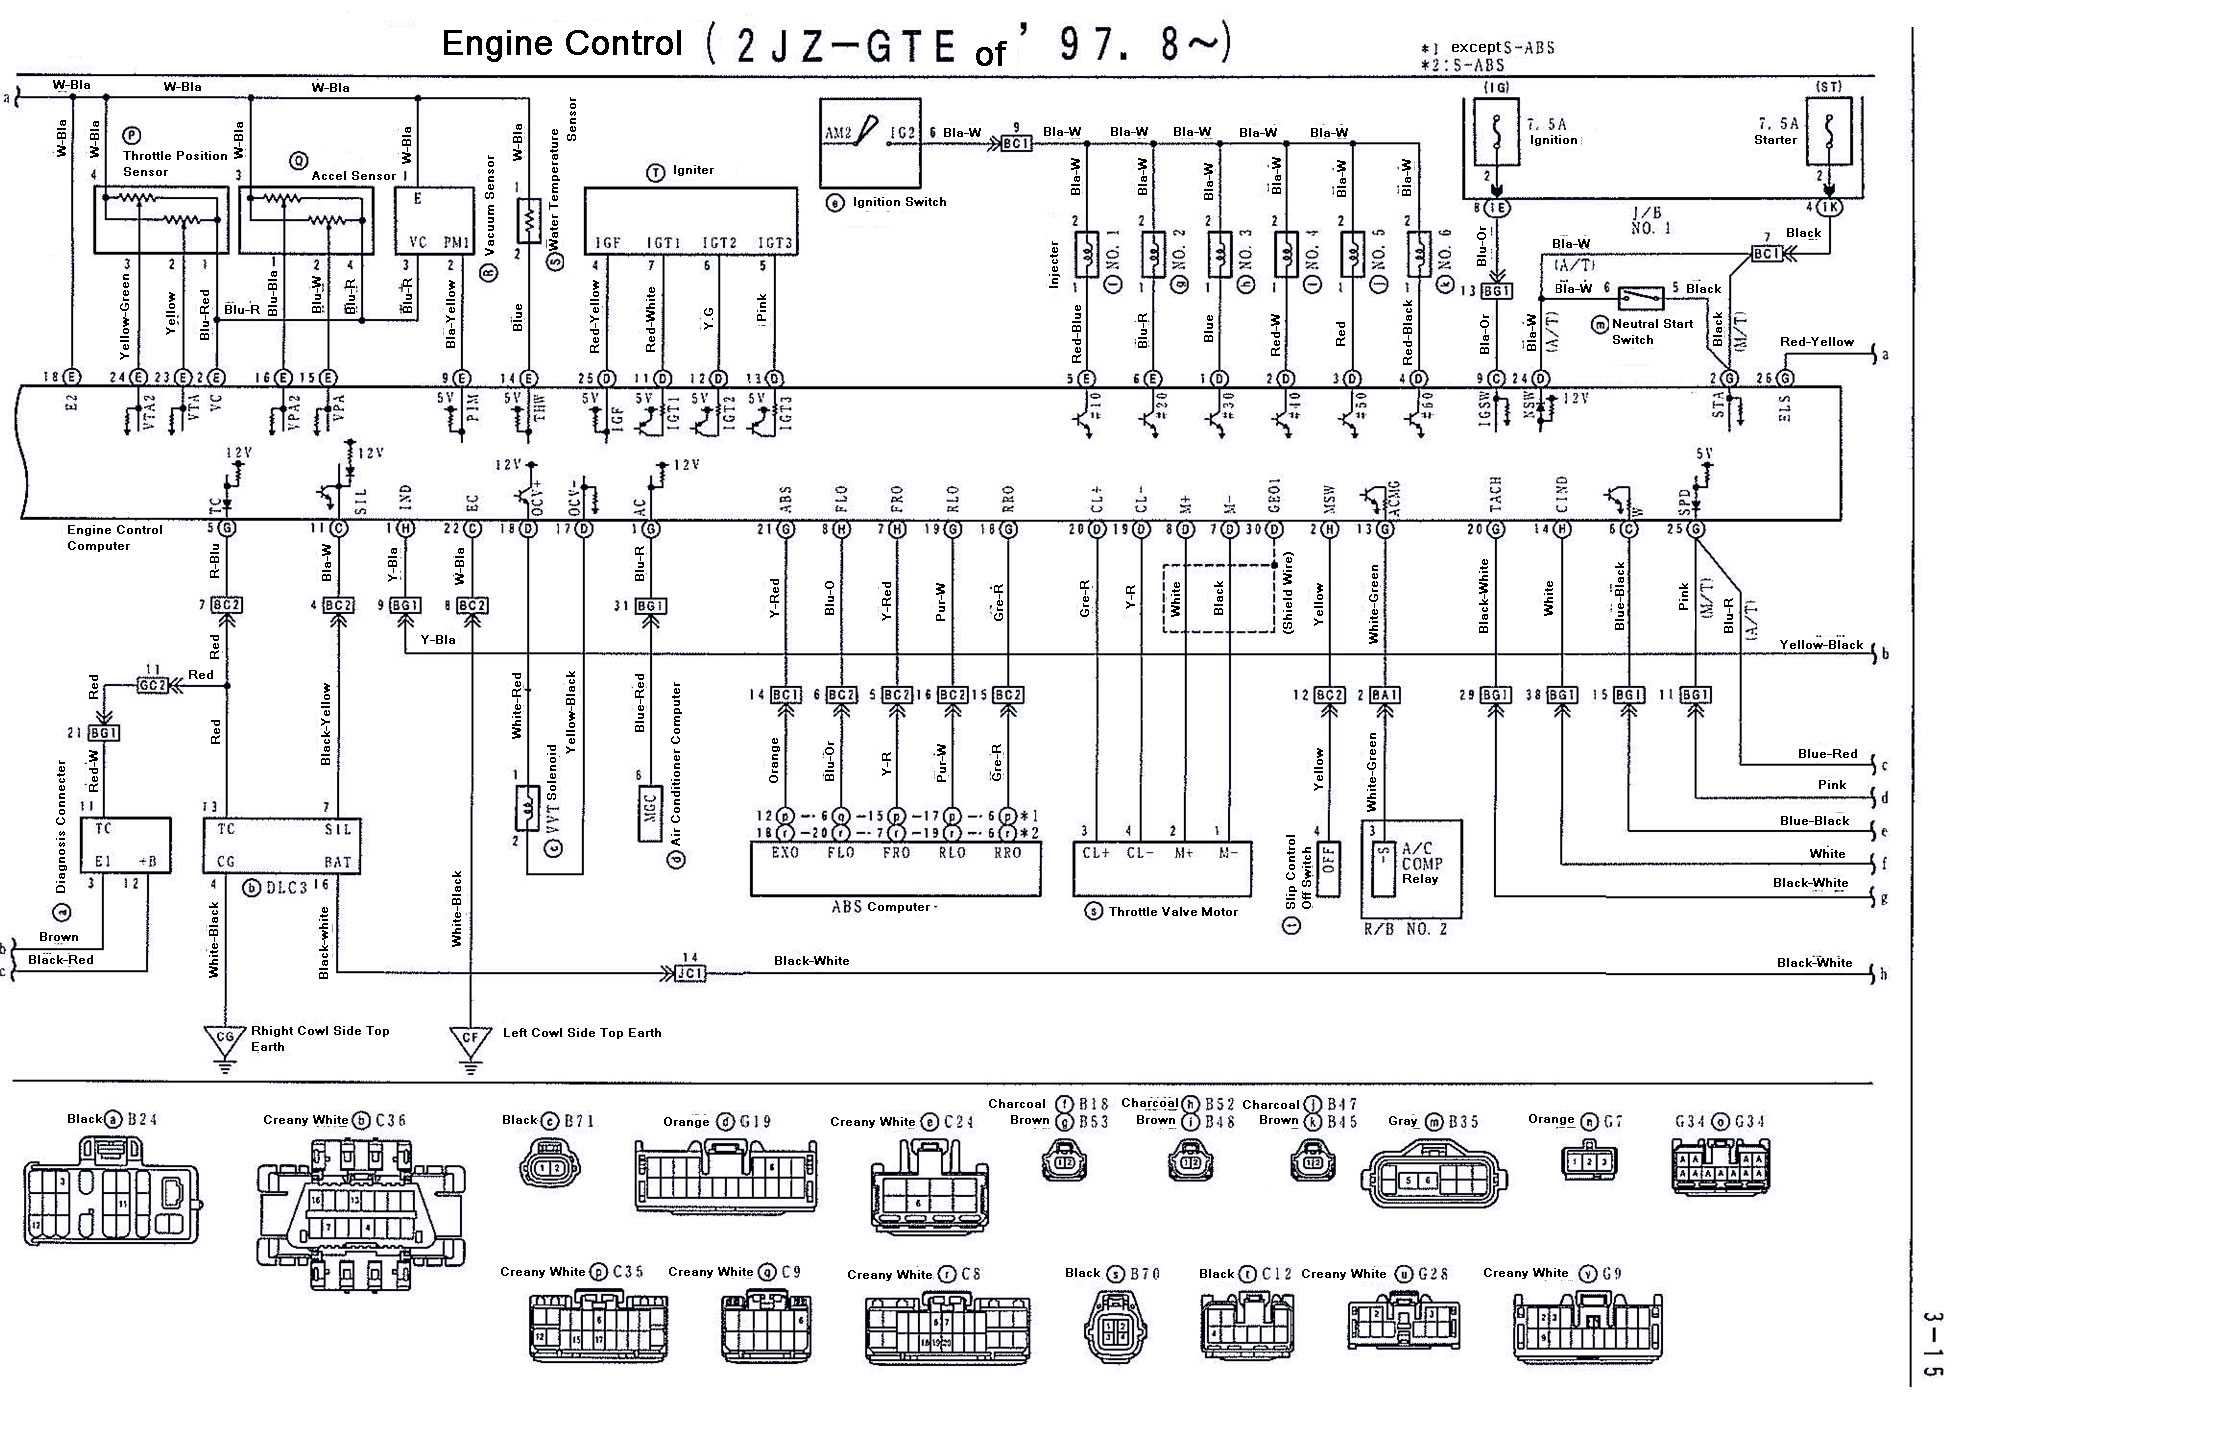 WRG-5047] 93 Lexus Gs300 Fuse Diagram on